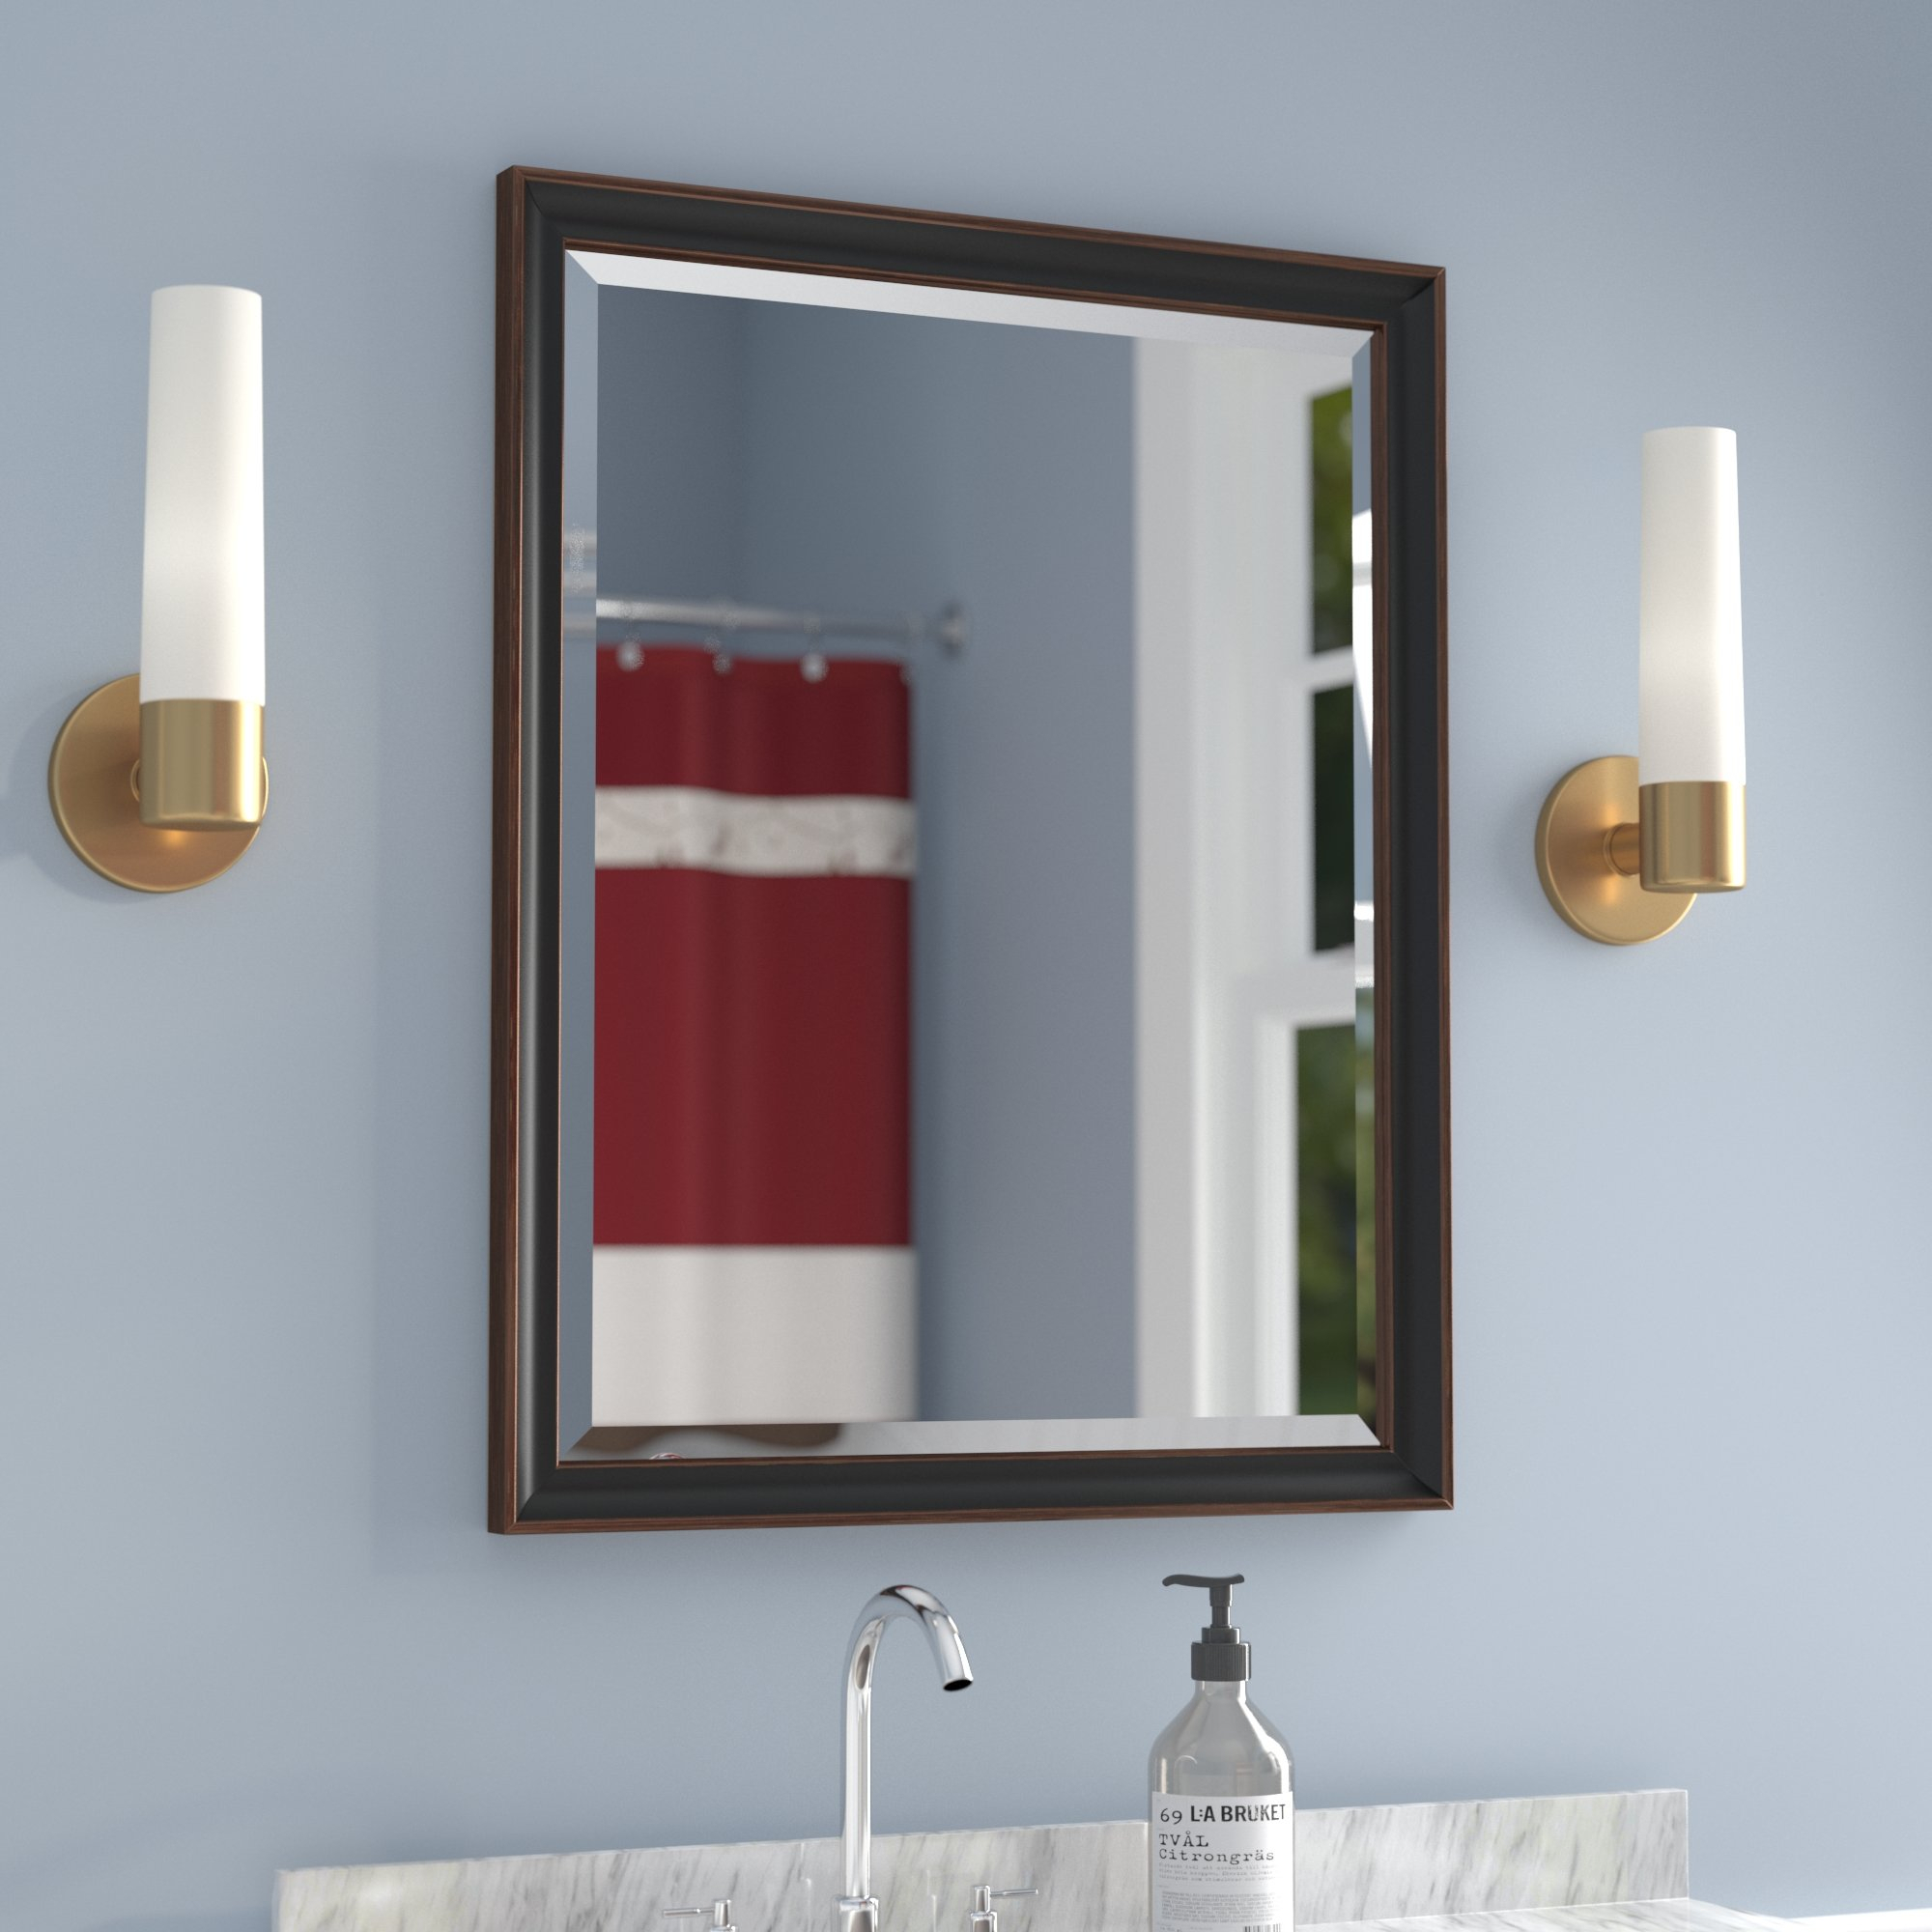 Culley Framed Beveled Wall Accent Mirror Inside Dedrick Decorative Framed Modern And Contemporary Wall Mirrors (View 20 of 20)